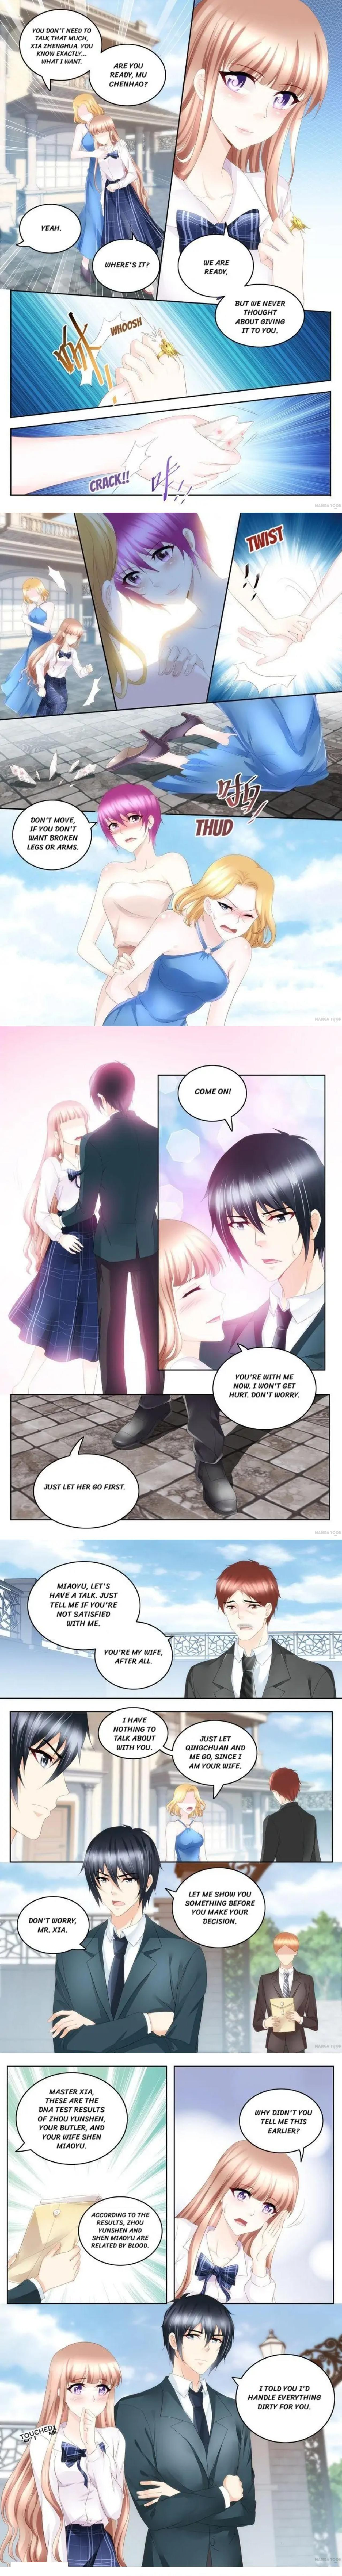 Vengeful Girl With Her Ceo Chapter 45 page 1 - Mangakakalots.com